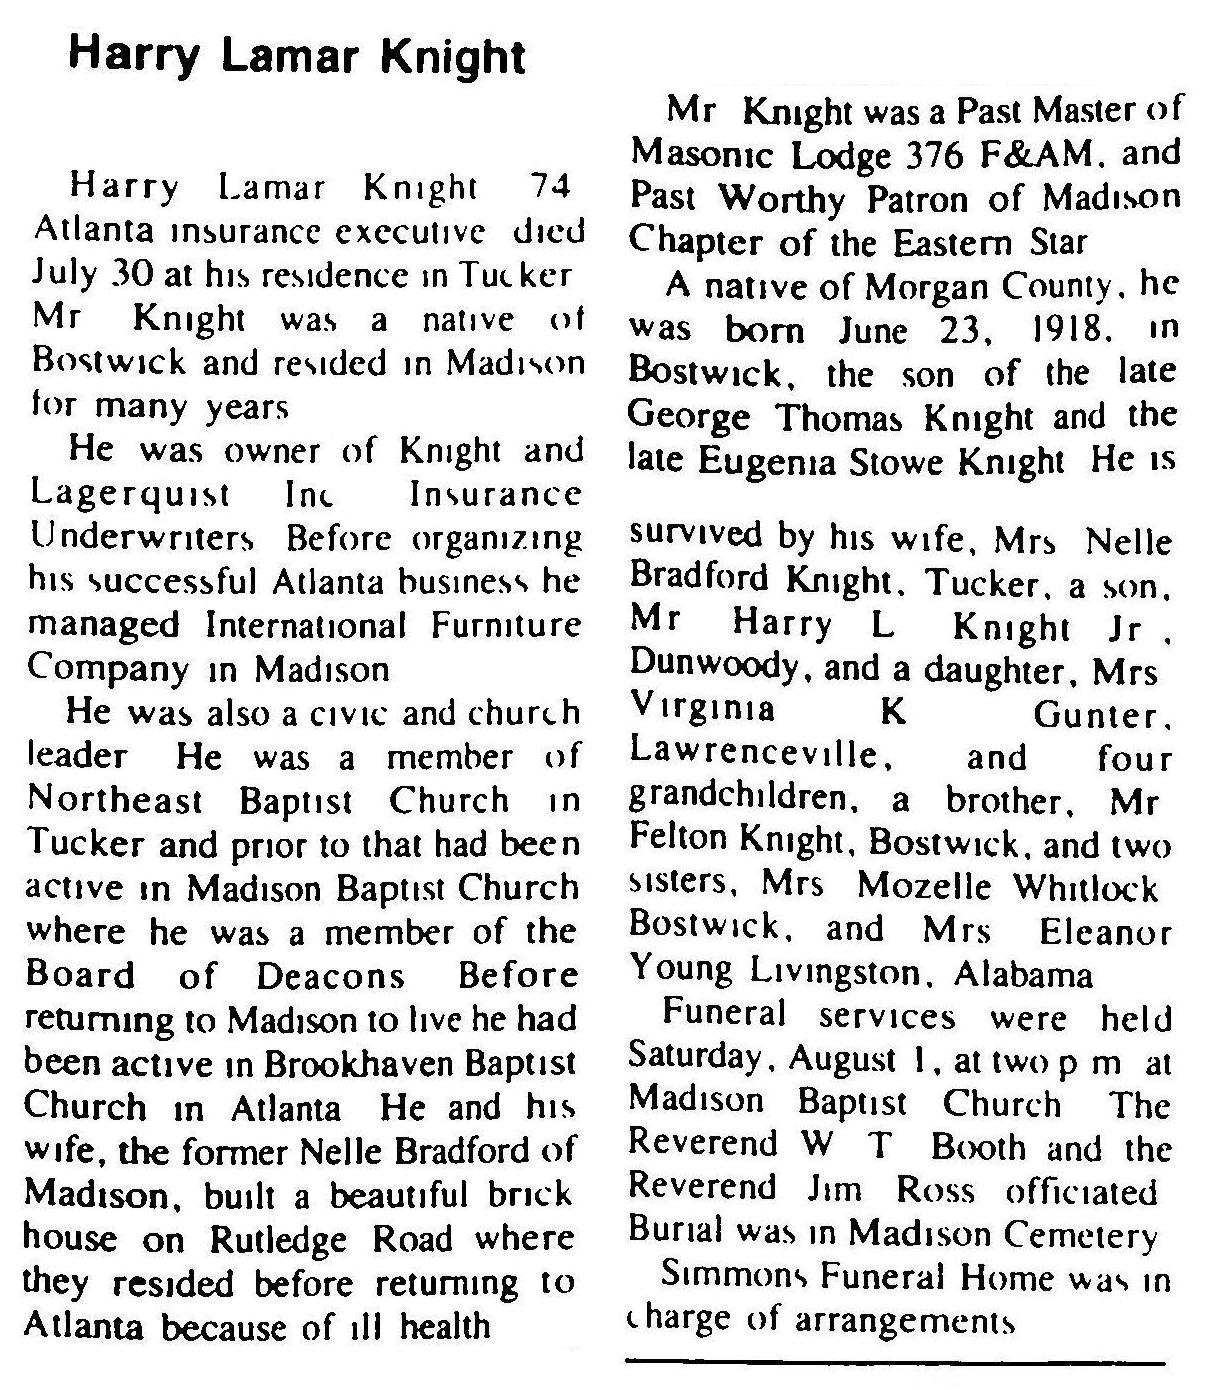 knight_harrylamar_1992-obituary.jpeg